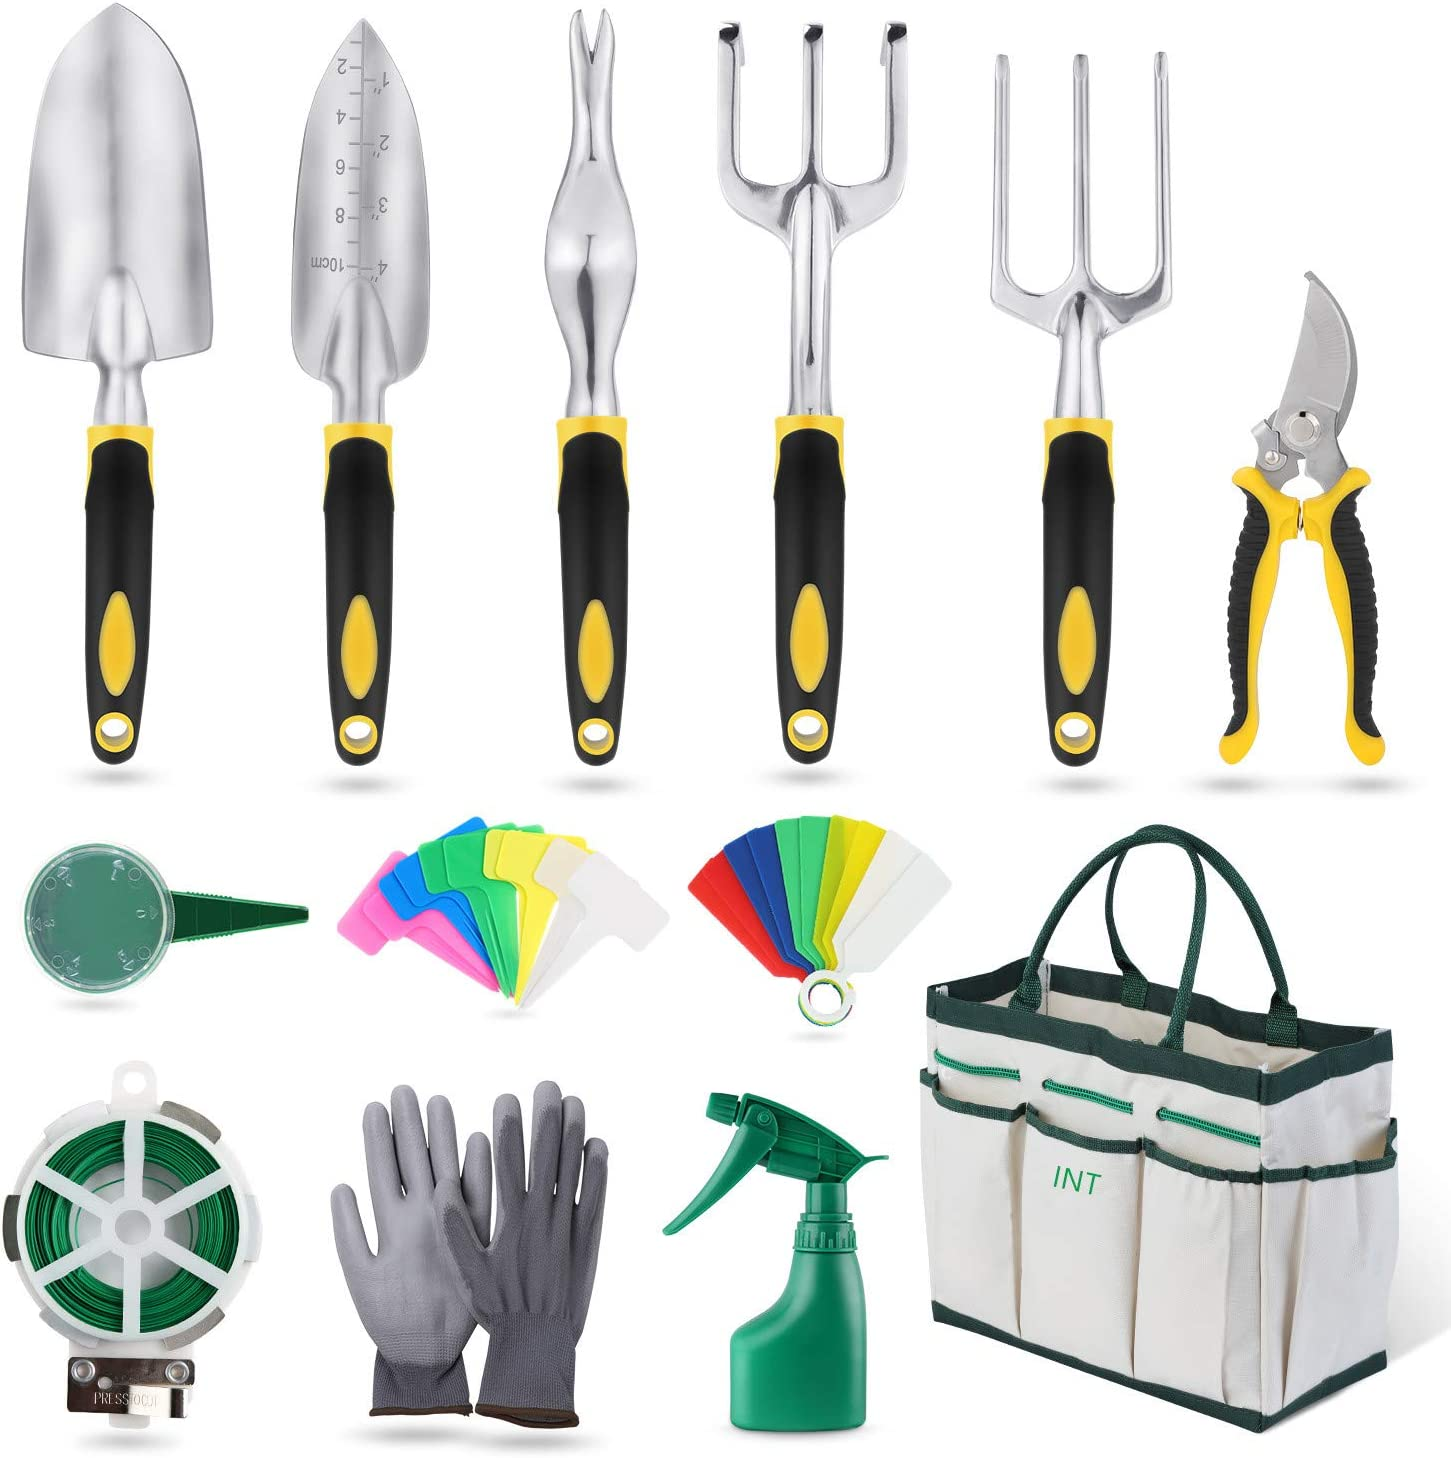 INT Garden Tools Set, 32 Pieces Gardening Hand Tool Kit, Durable Storage Tote Bag, Non-Slip Handle and Pruning Shears, Gardening Supplies Gifts for Men Women